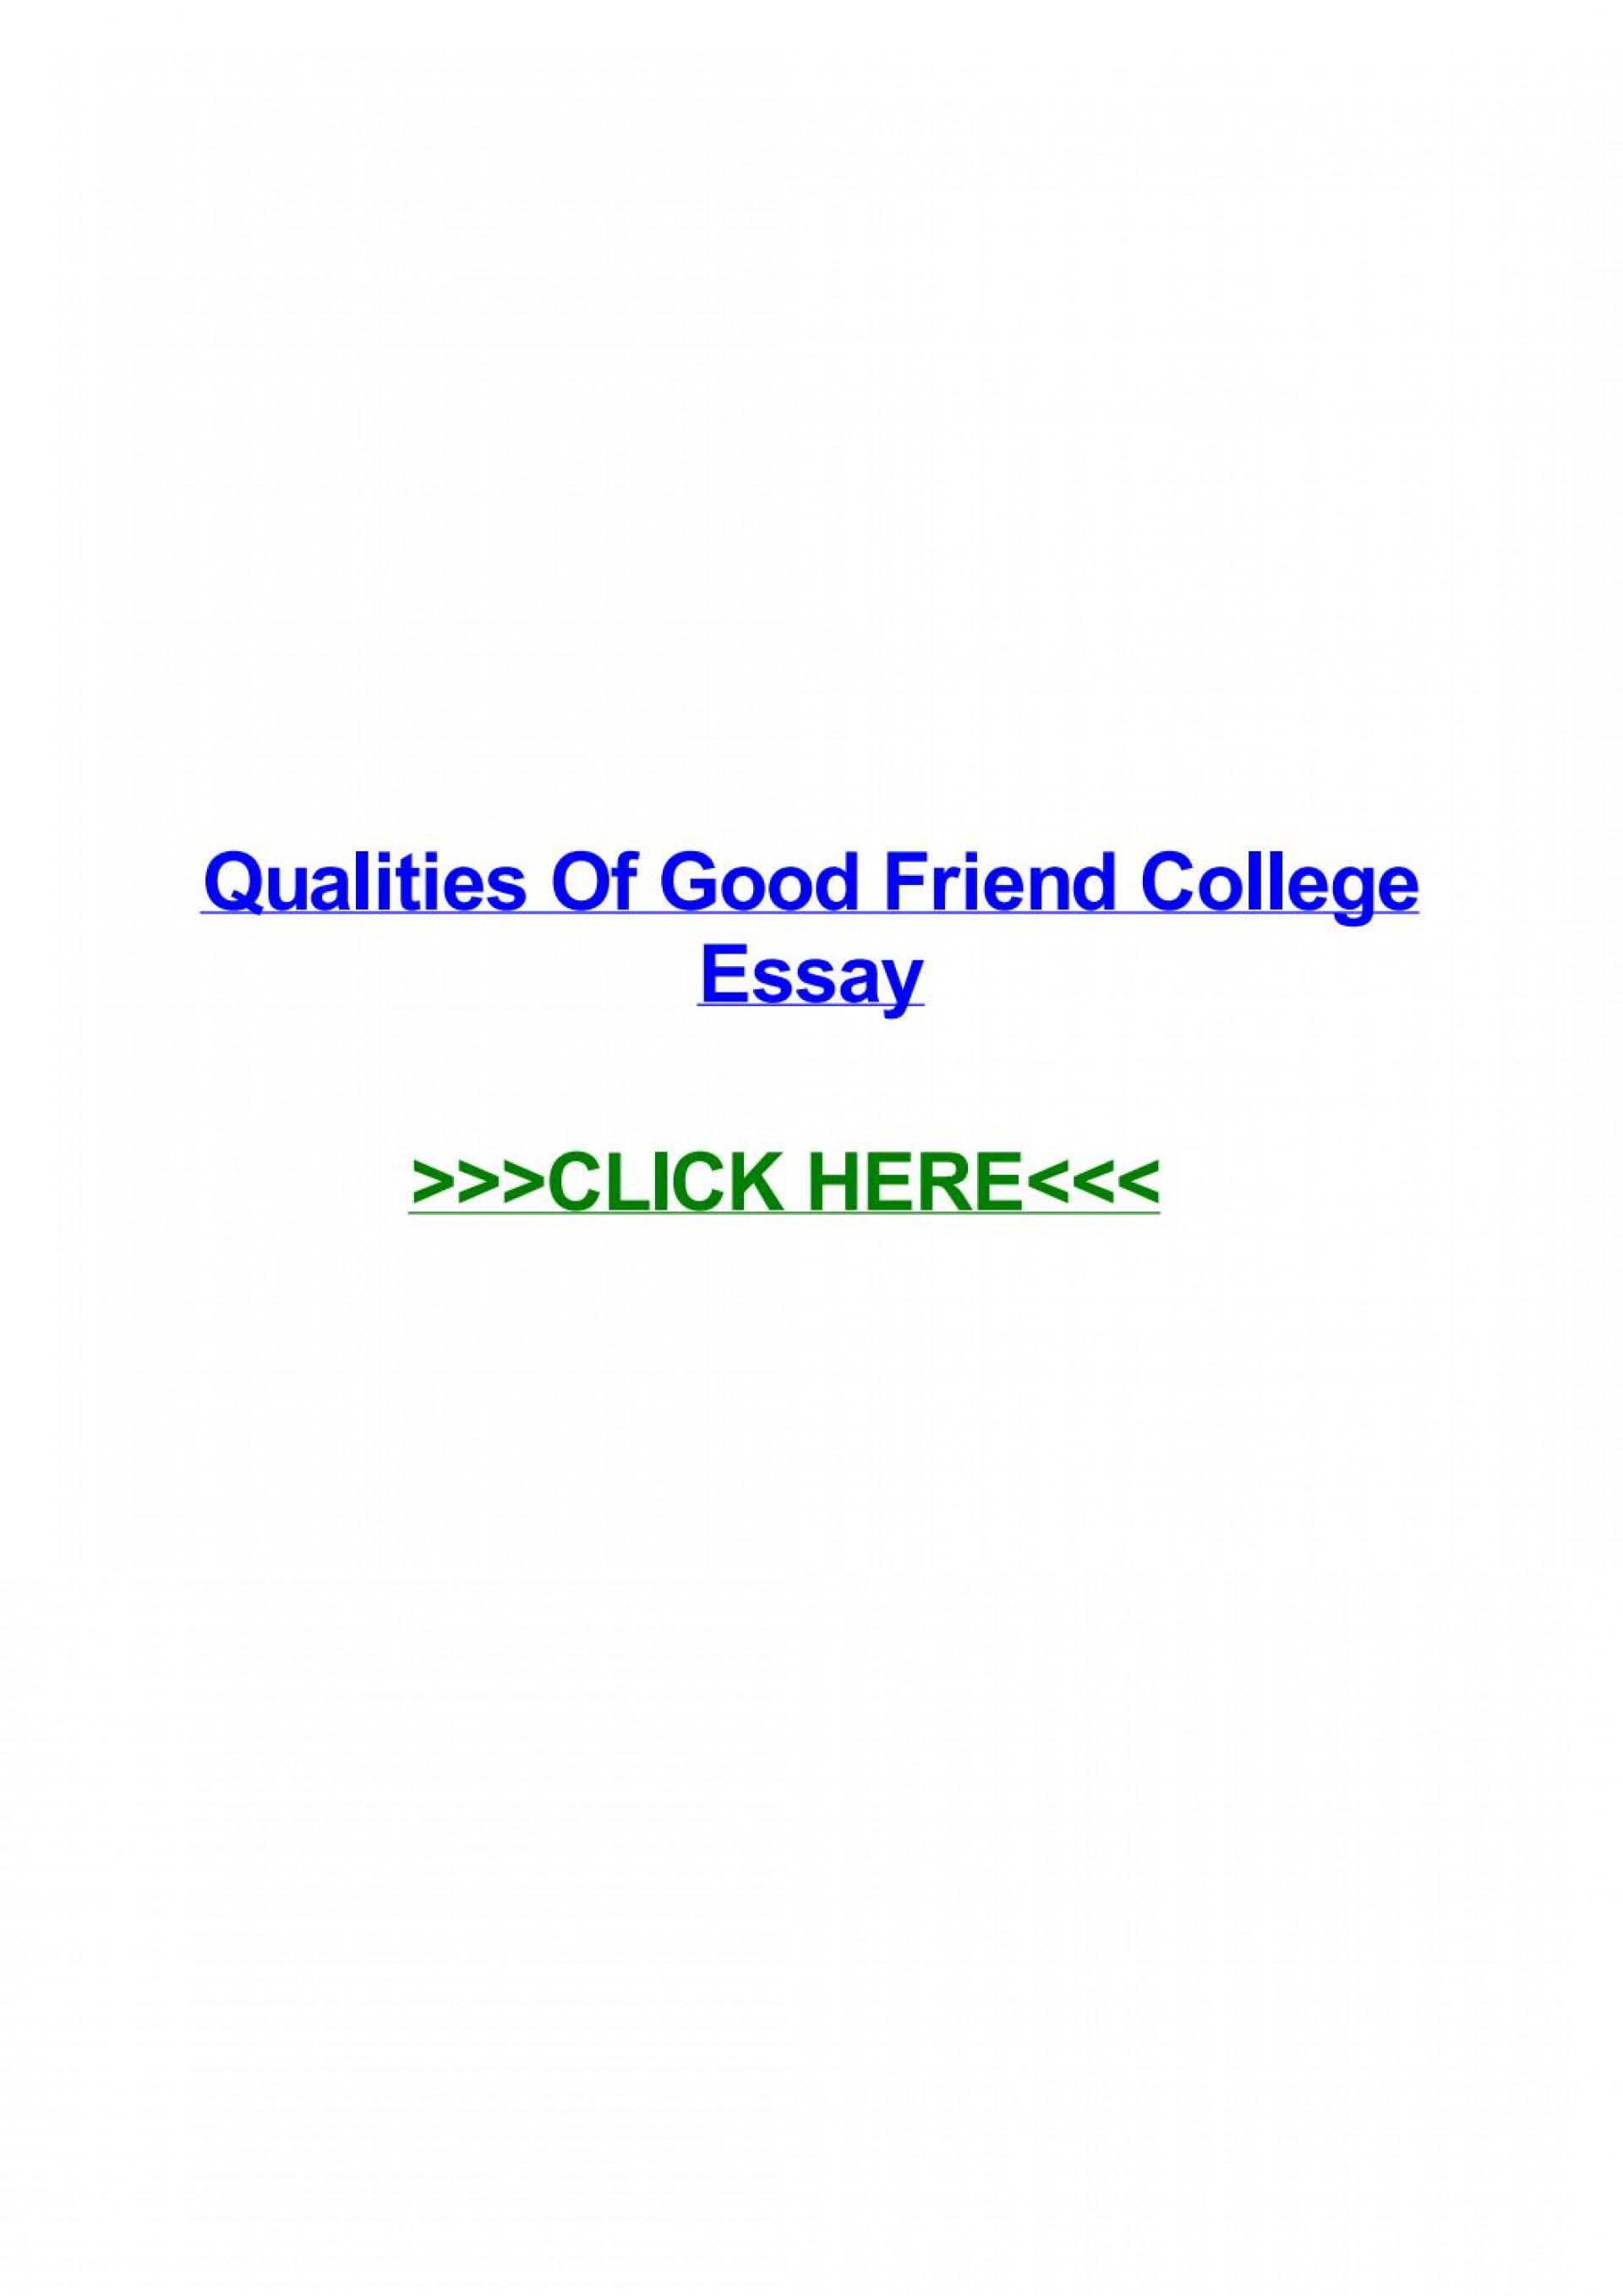 005 Qualities Of Good Friend Essay Page 1 Exceptional A Conclusion Expository My Best Should Have 1920